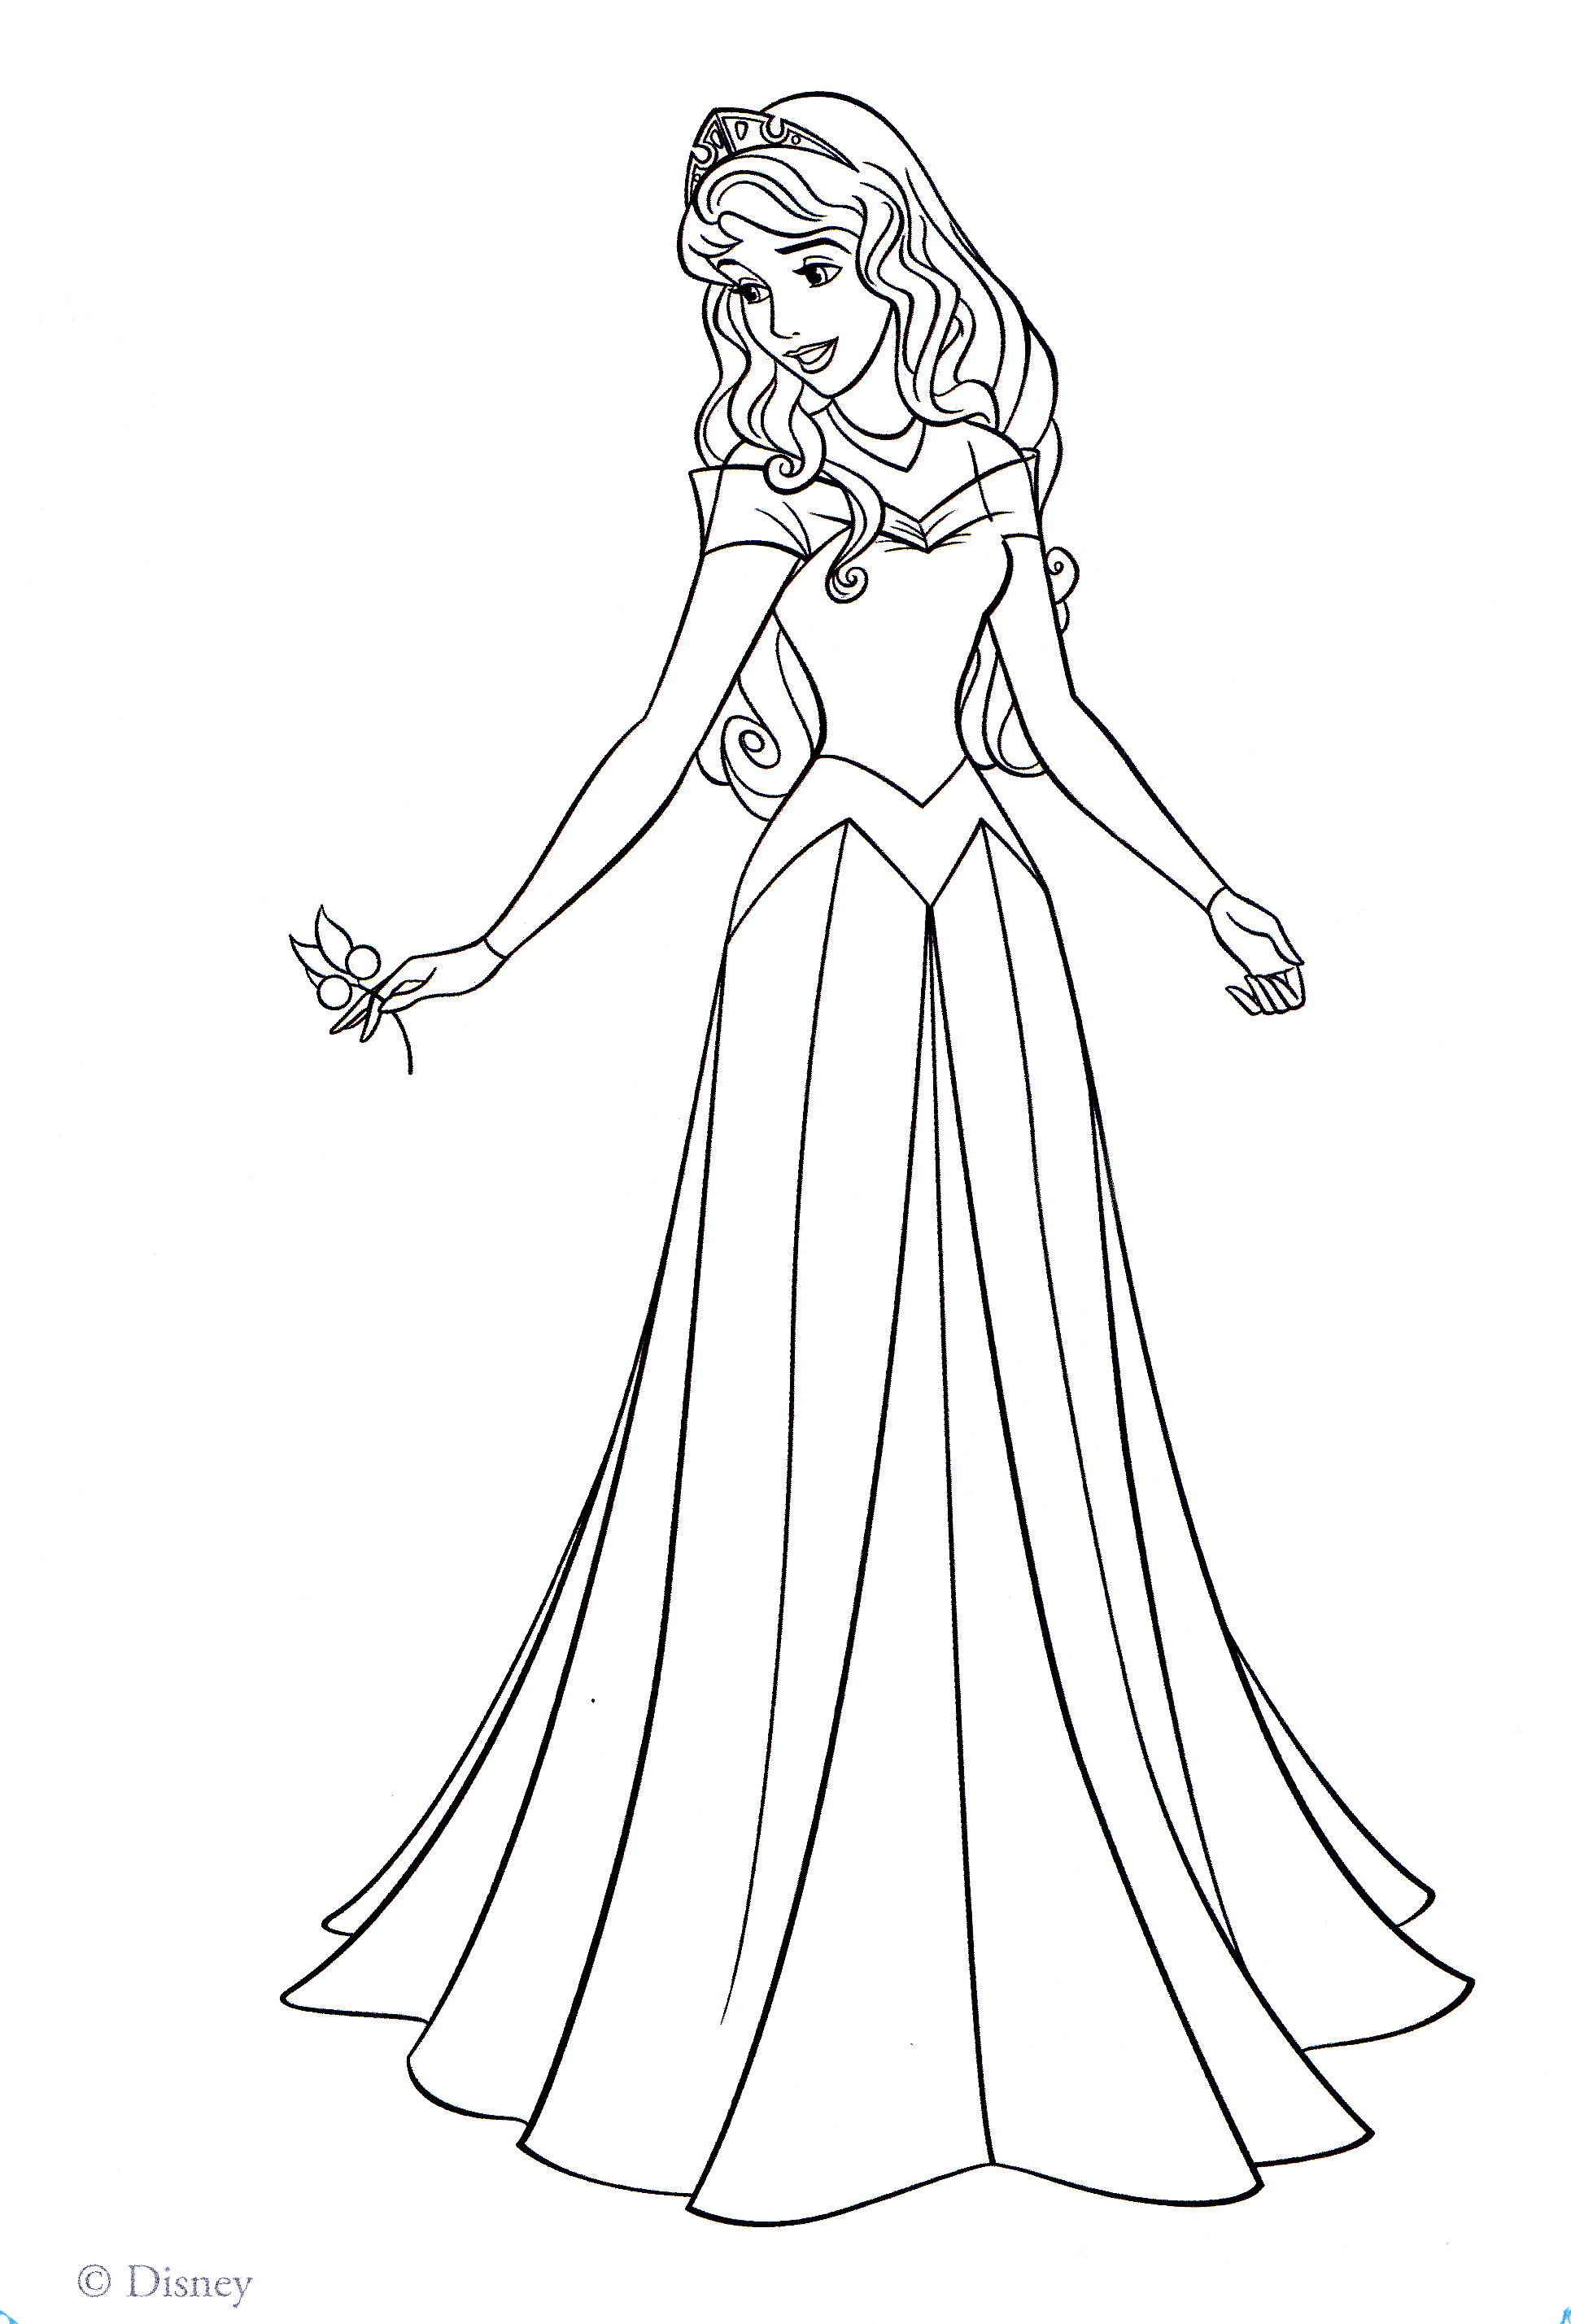 princess aurora coloring pages Walt Disney Figuren Bilder Walt Disney Coloring Pages   Princess  princess aurora coloring pages